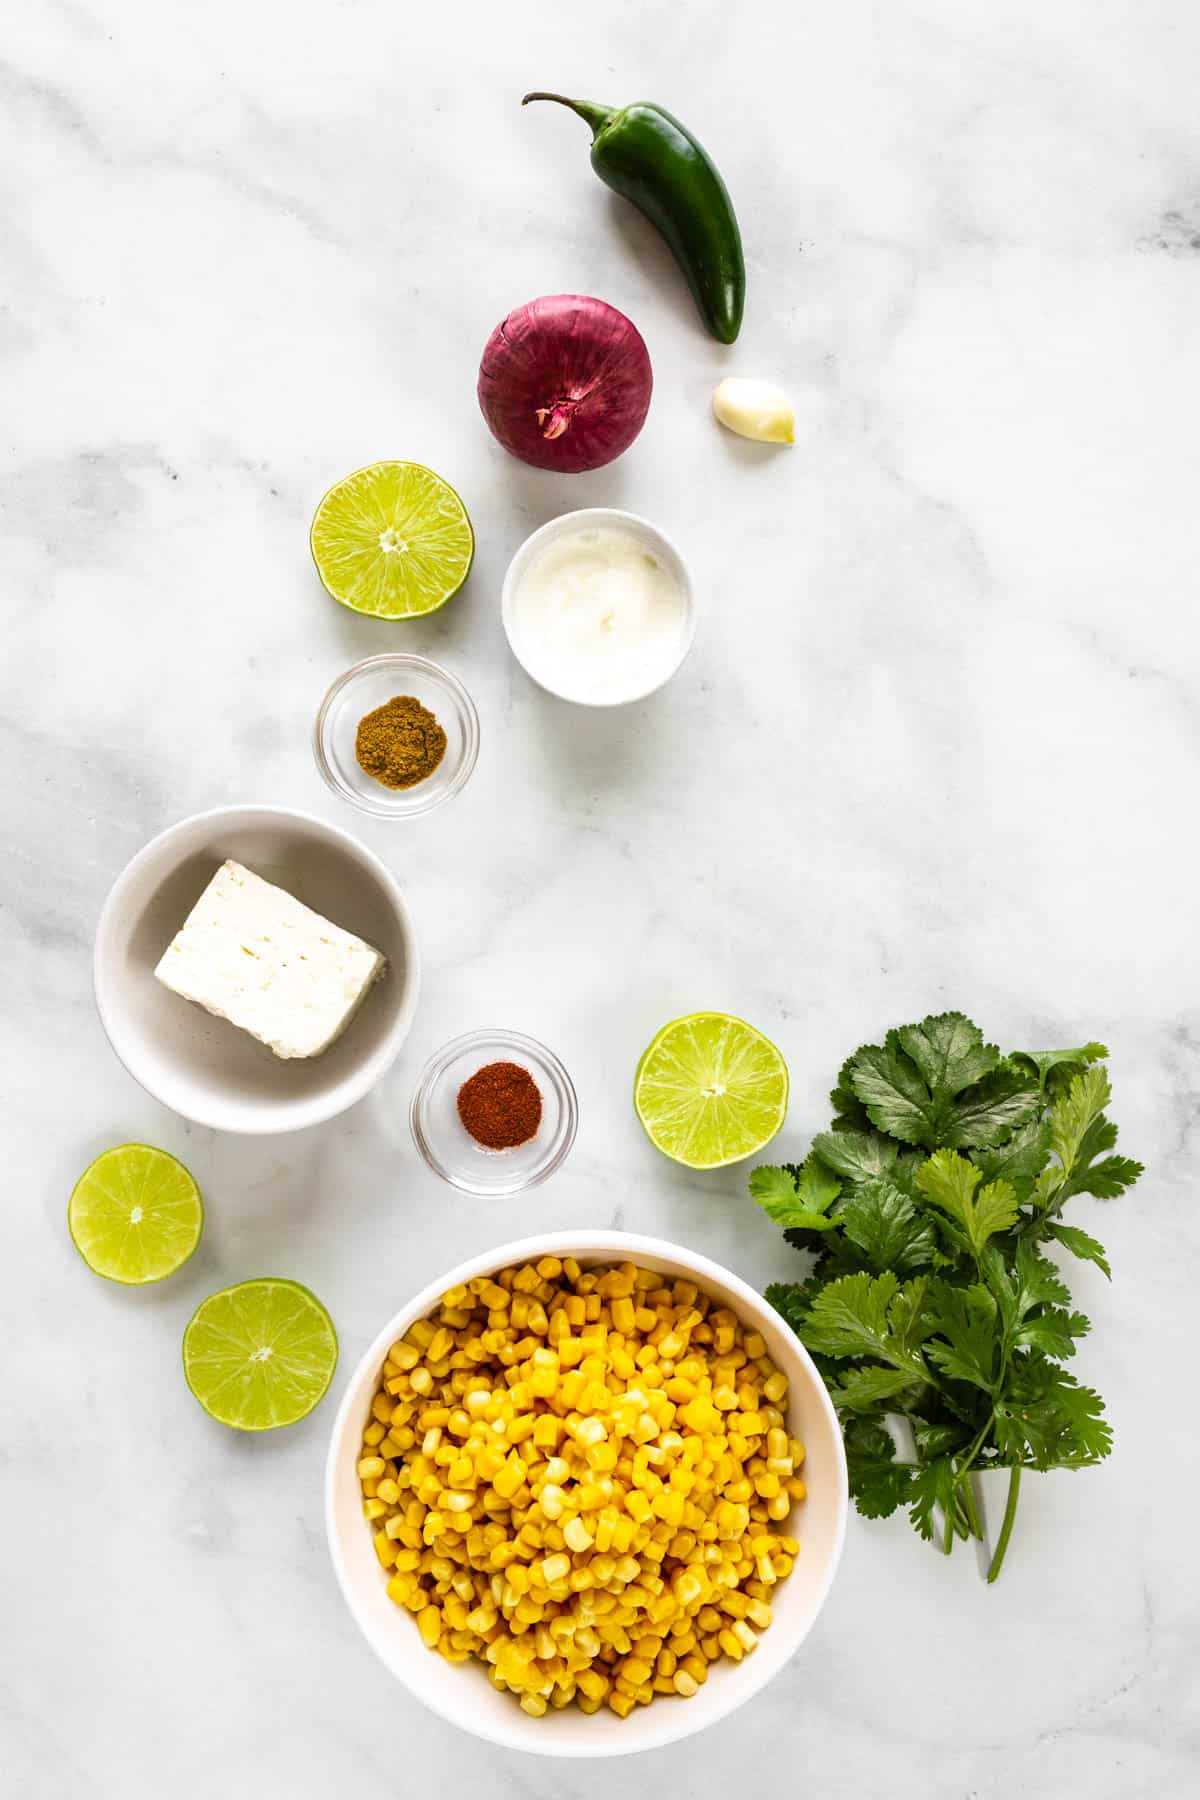 A bowl of corn sits on a marble countertop with some limes, cilantro, a block of feta, a red onion, a jalapeño, a garlic clove, a small bowl of greek yogurt, and two smallpinch bowls of cumin and chili powder.